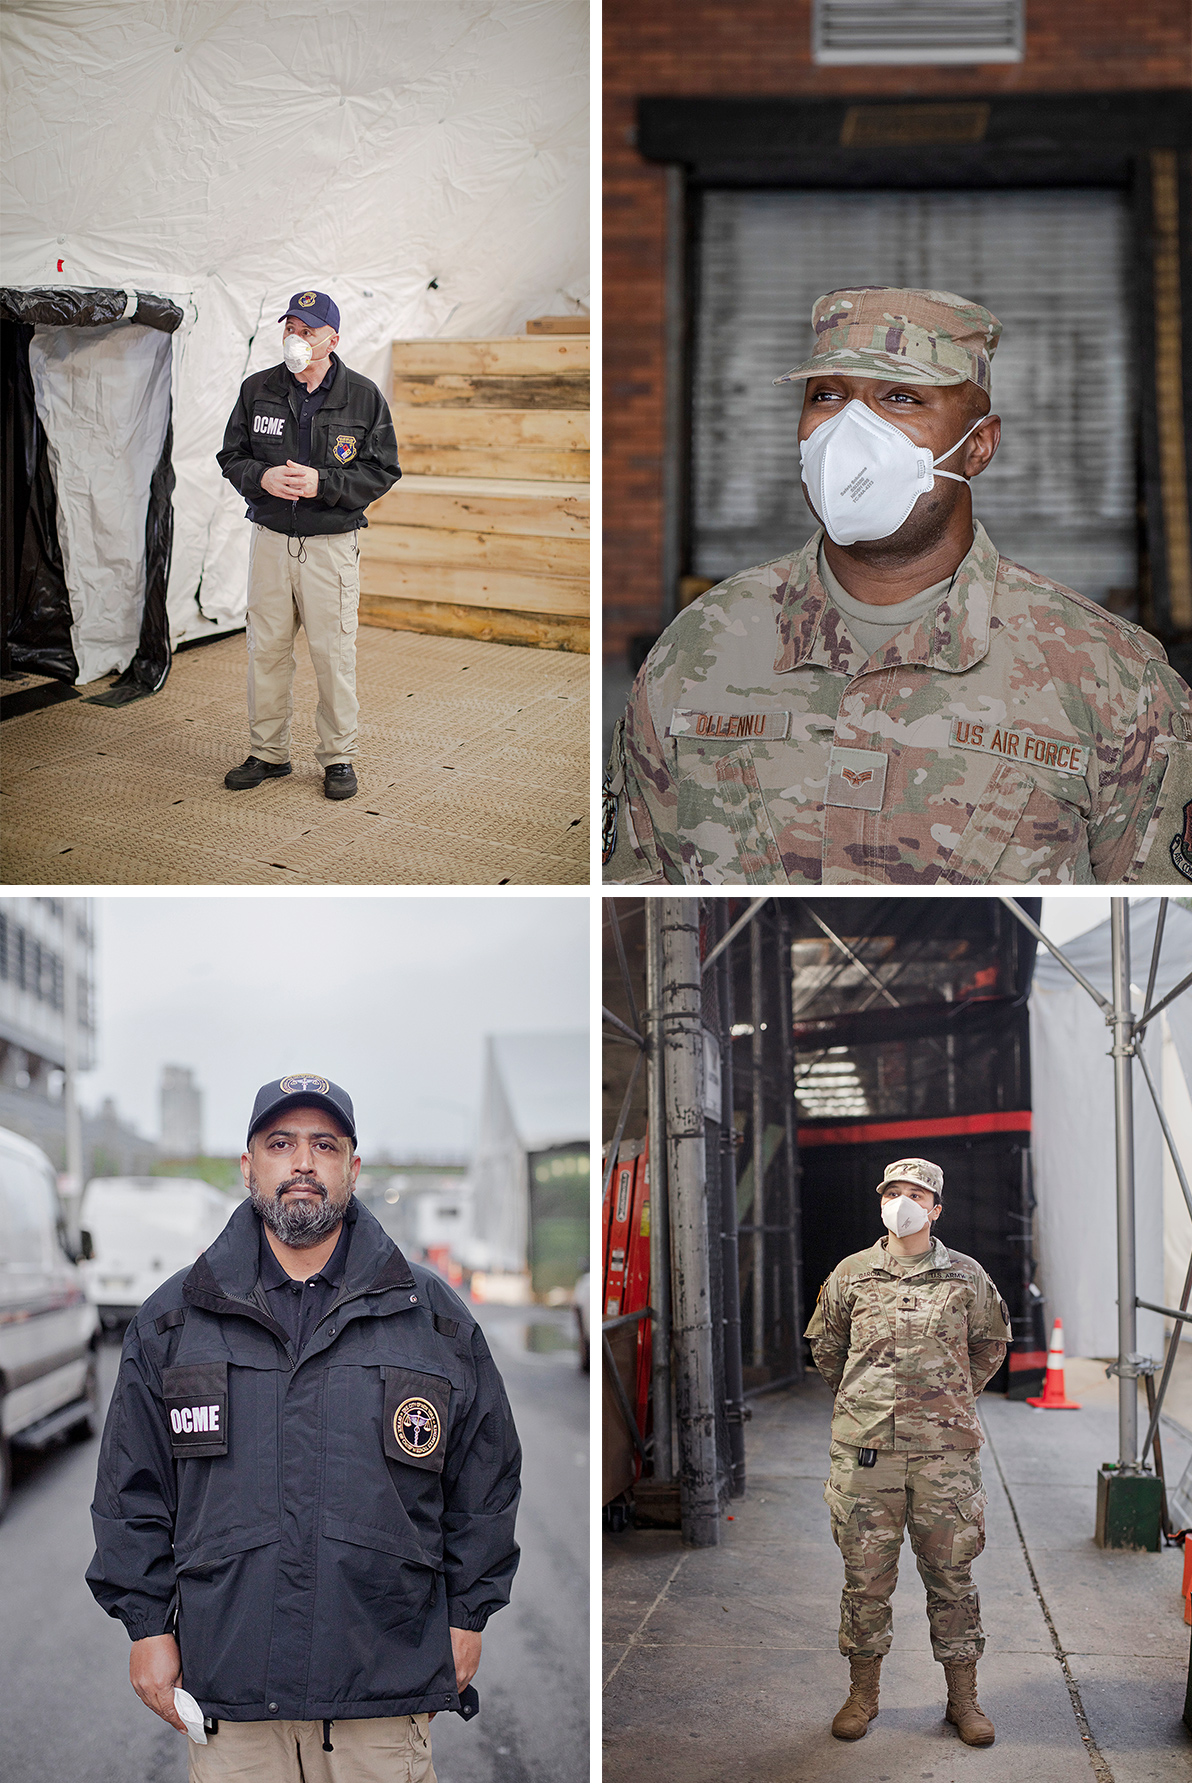 Clockwise from top-left: Frank DePaolo, Deputy Commissioner for Forensic Operations; Steve Ollennu, Senior Airman; Naraly Garcia, Specialist, Muhammed Qureshi, City Mortuary Technician